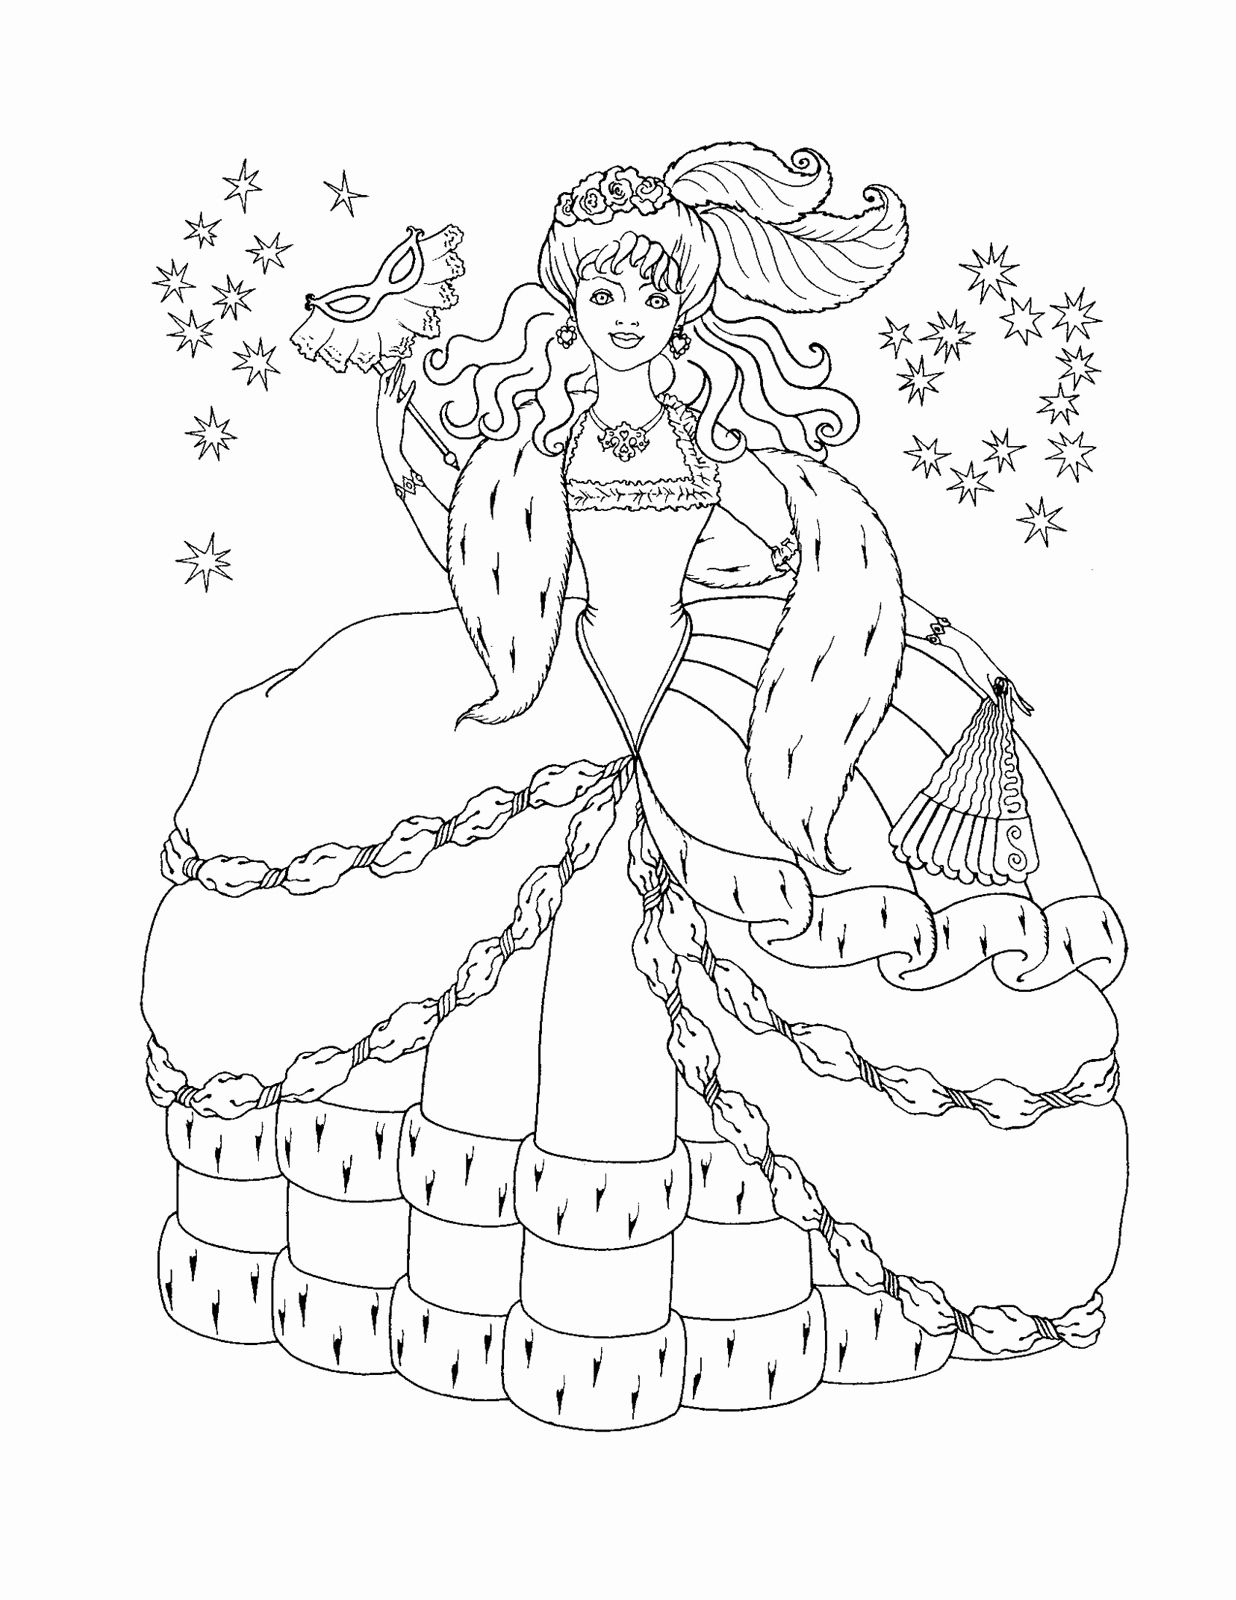 Disney Winter Coloring Pages Awesome Disney Princess Winter Coloring Pages Colori Princess Coloring Pages Disney Princess Coloring Pages Disney Princess Colors